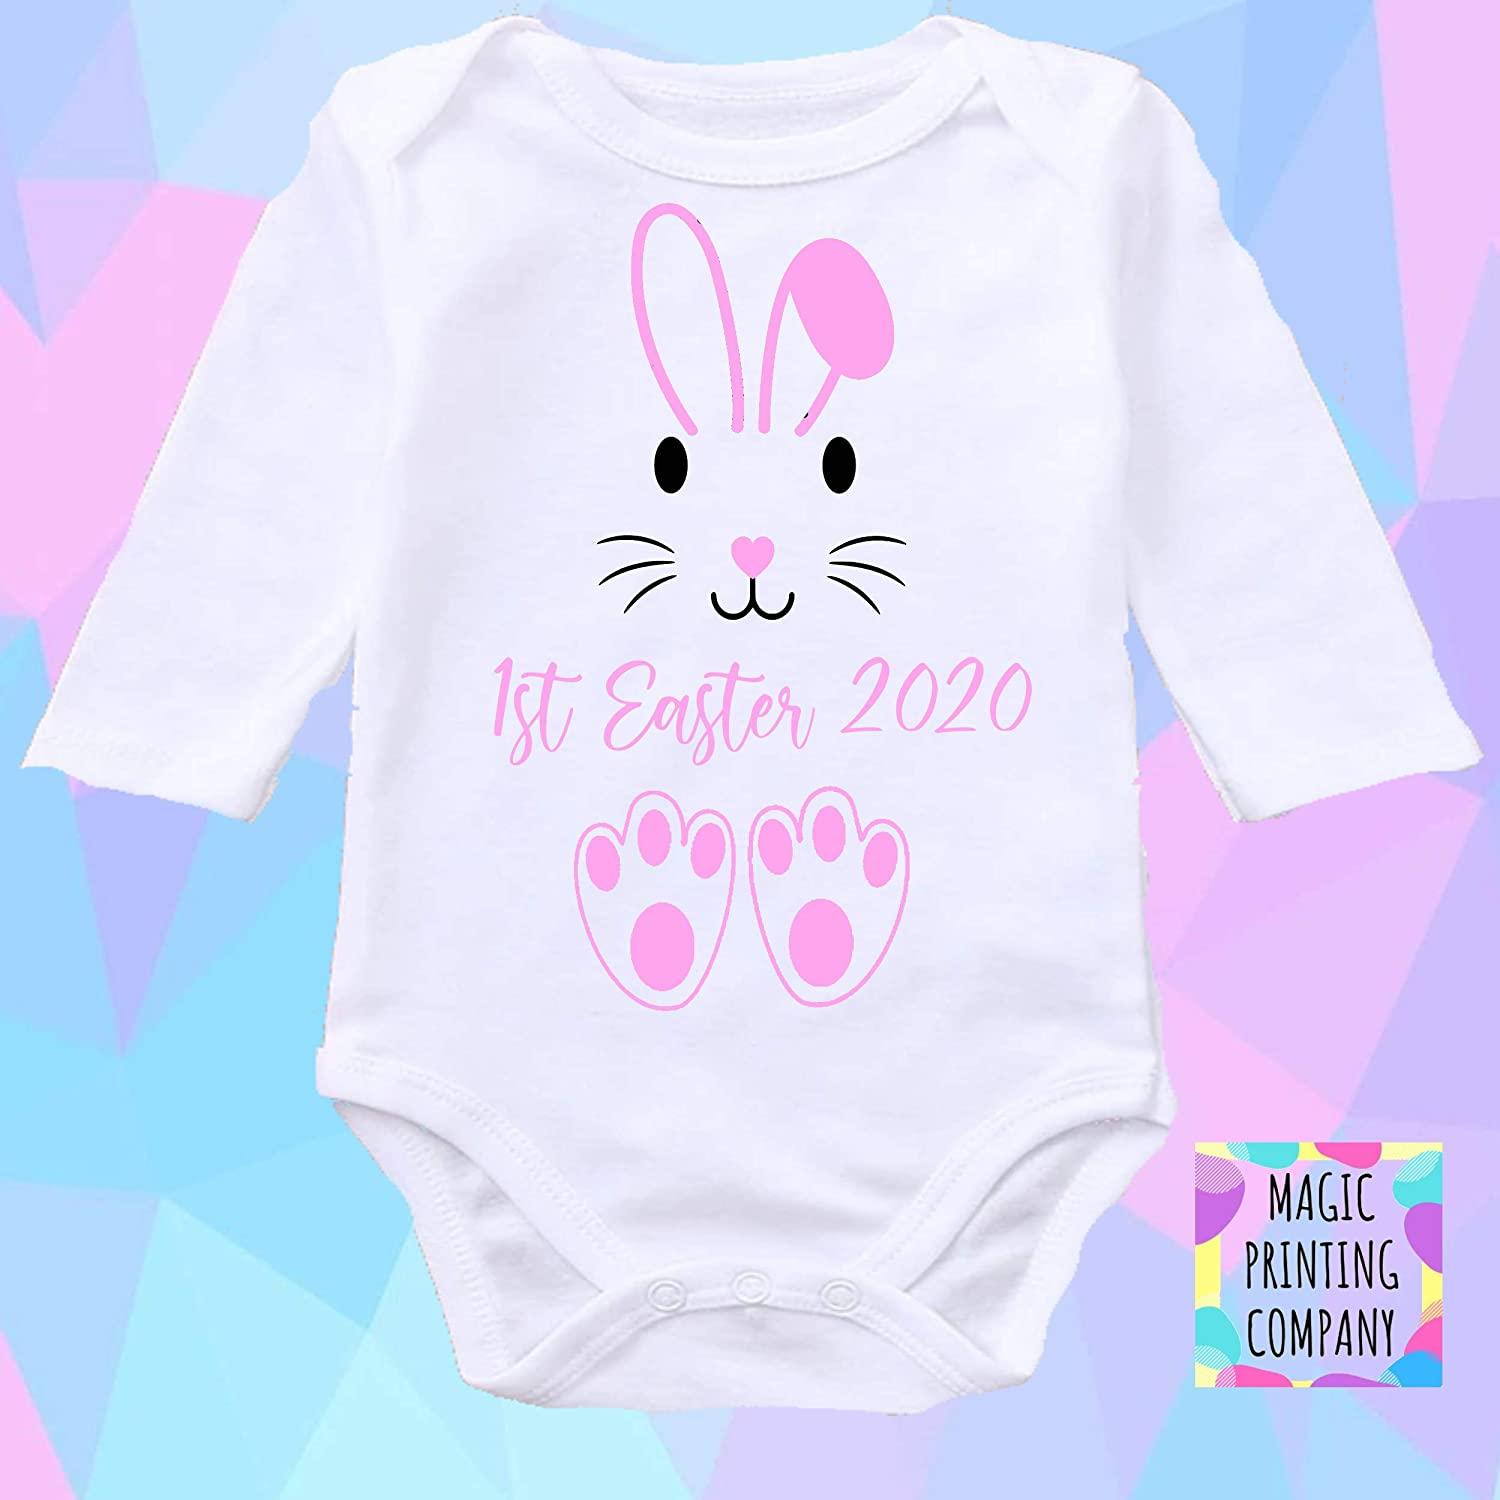 Babys 1st Easter Personalised baby bodysuit vest babygrow our Outfit 1st Easter 2020 gift boys girls